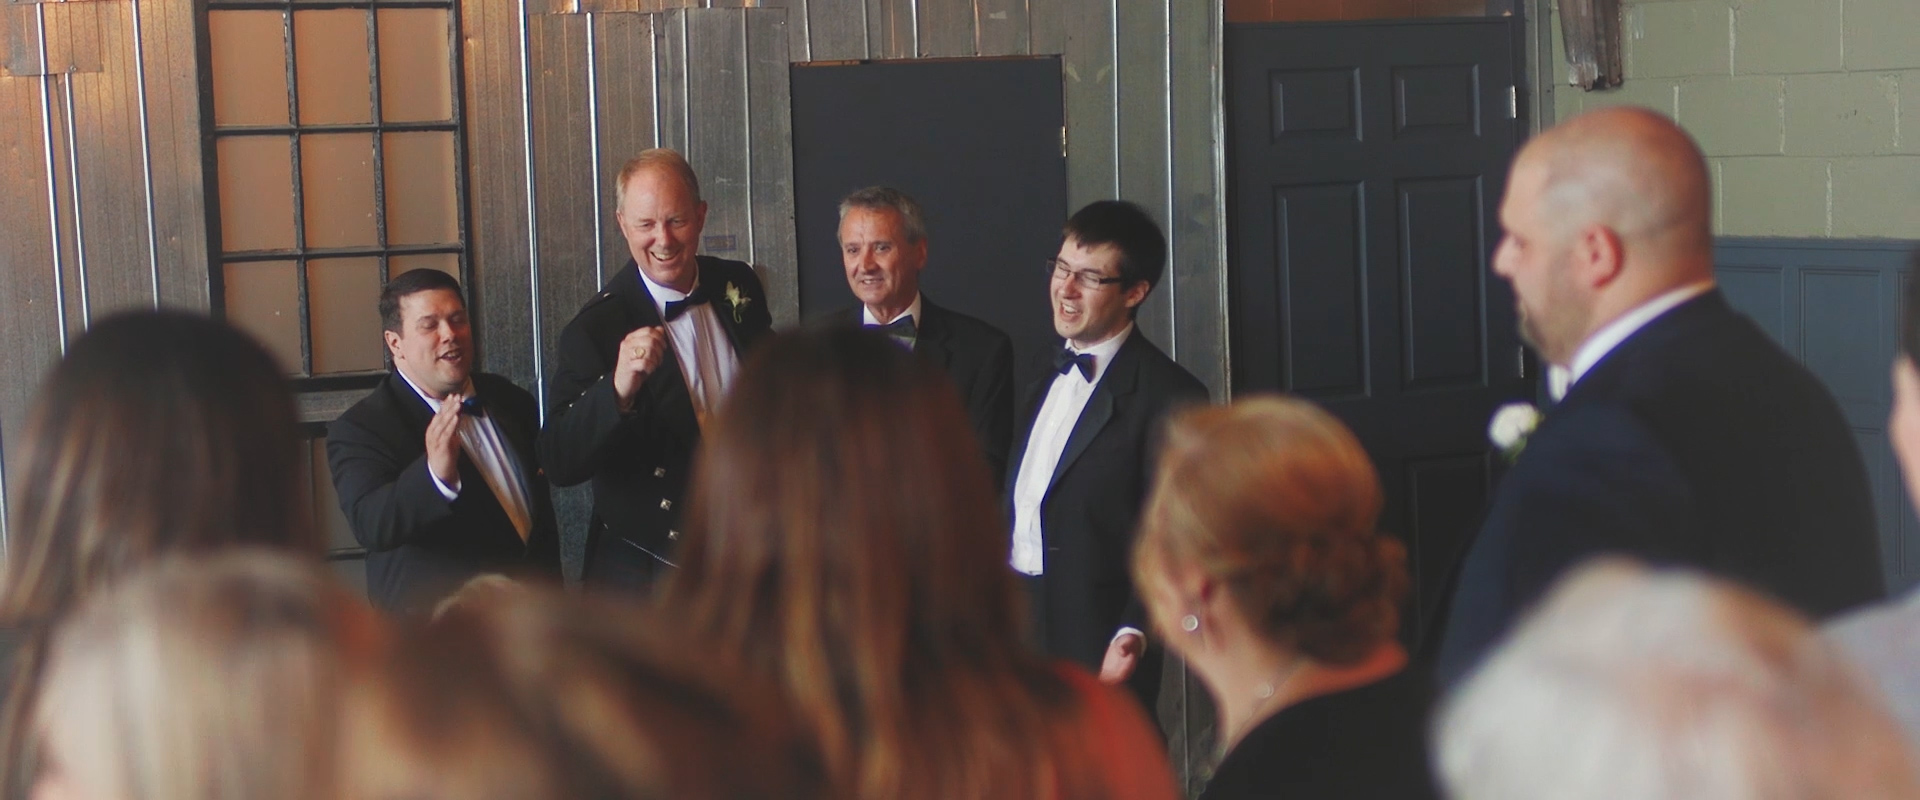 An image of a brides father and family members singing at her wedding reception; taken from a Toronto Wedding Video